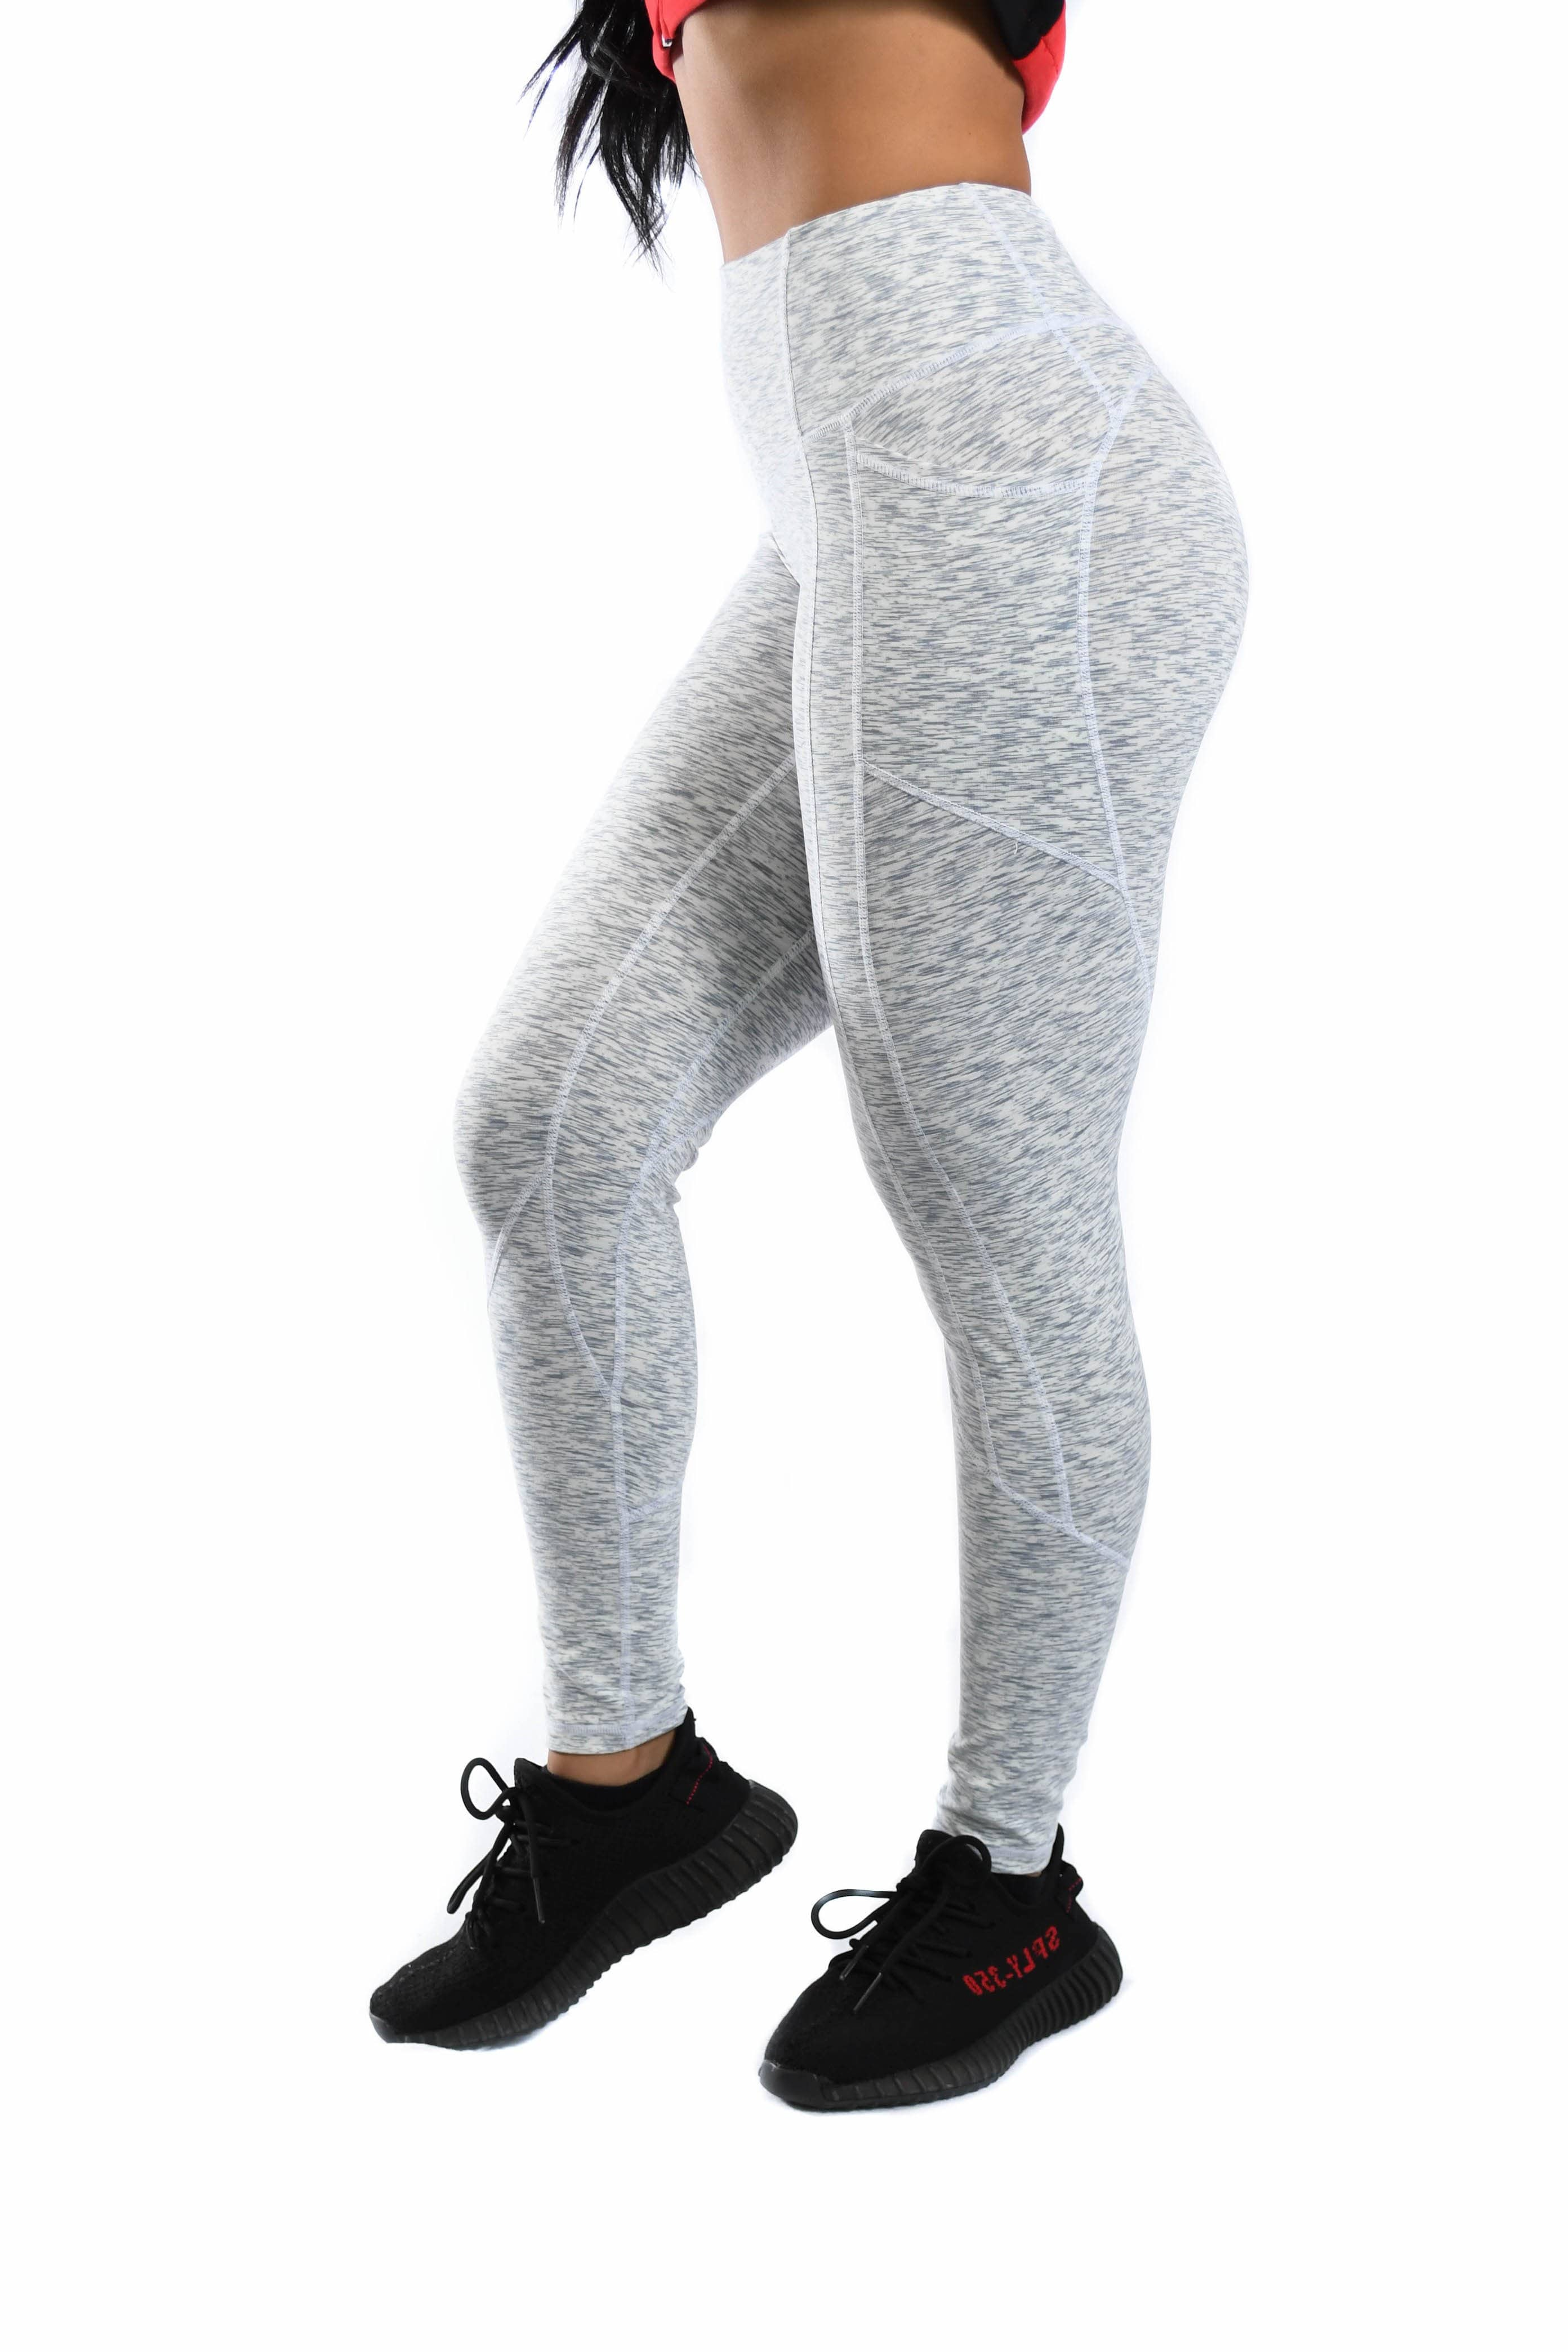 Resilient Heart Booty Leggings- Speckled Grey